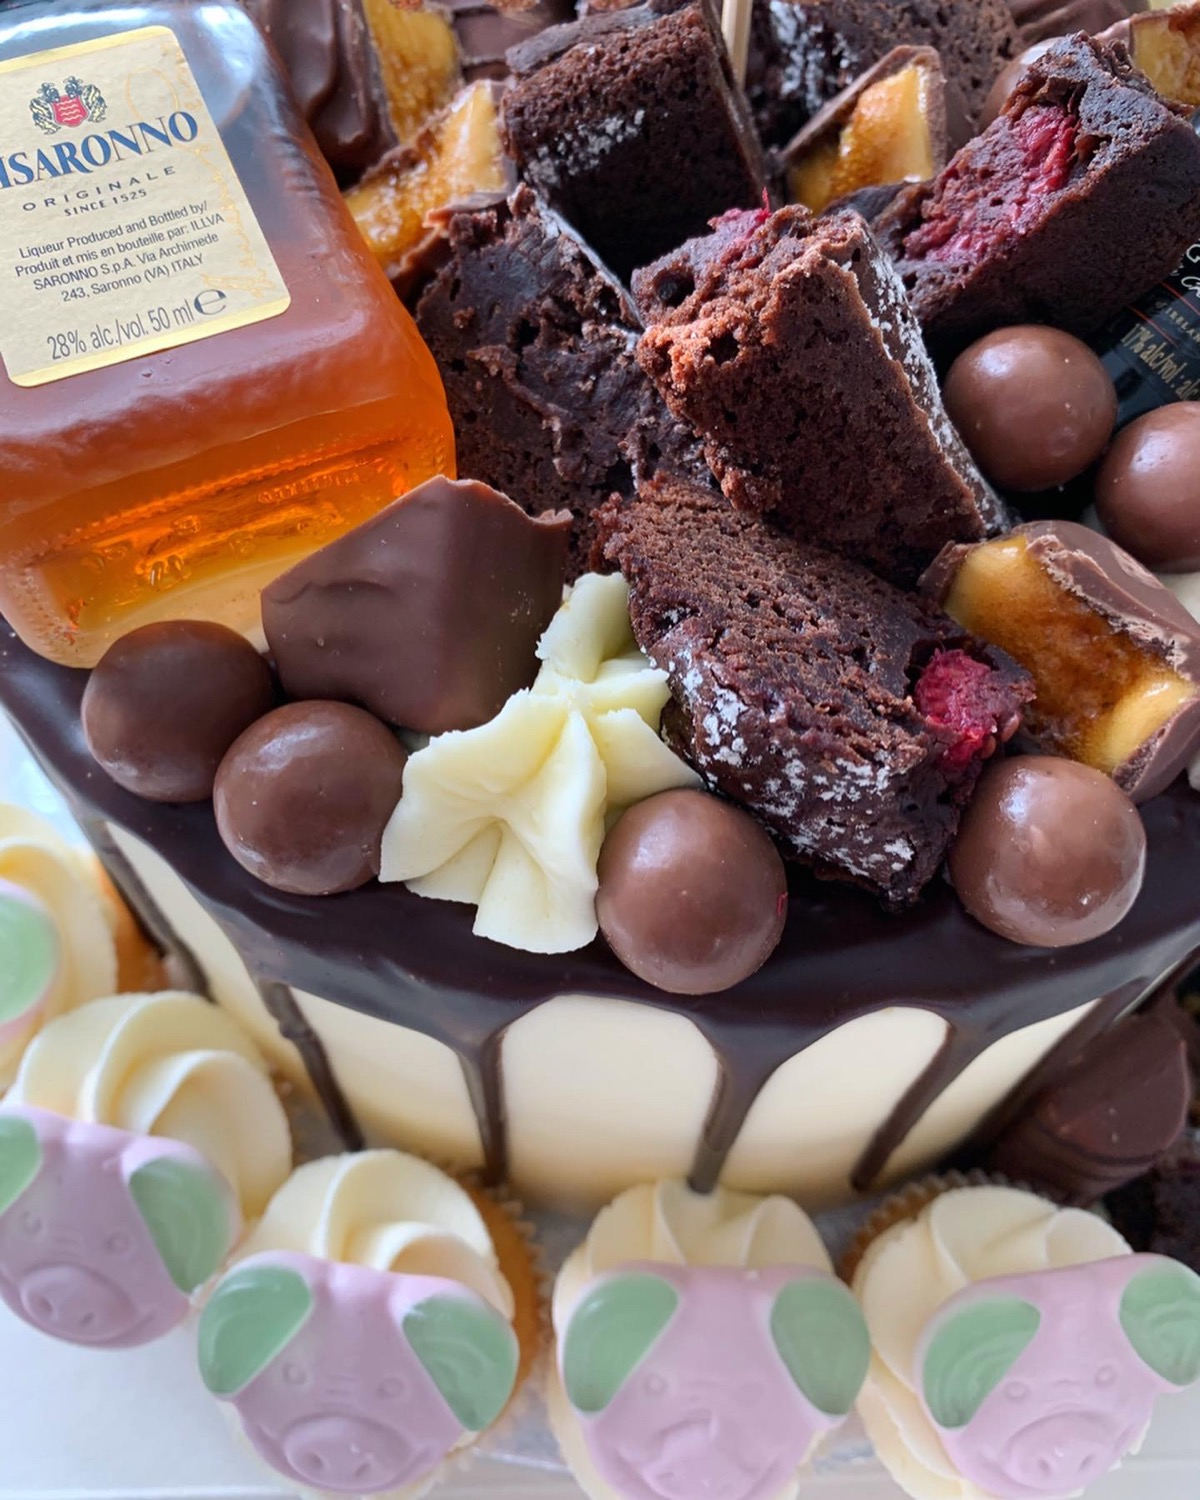 Close up - Brownies & chocolates